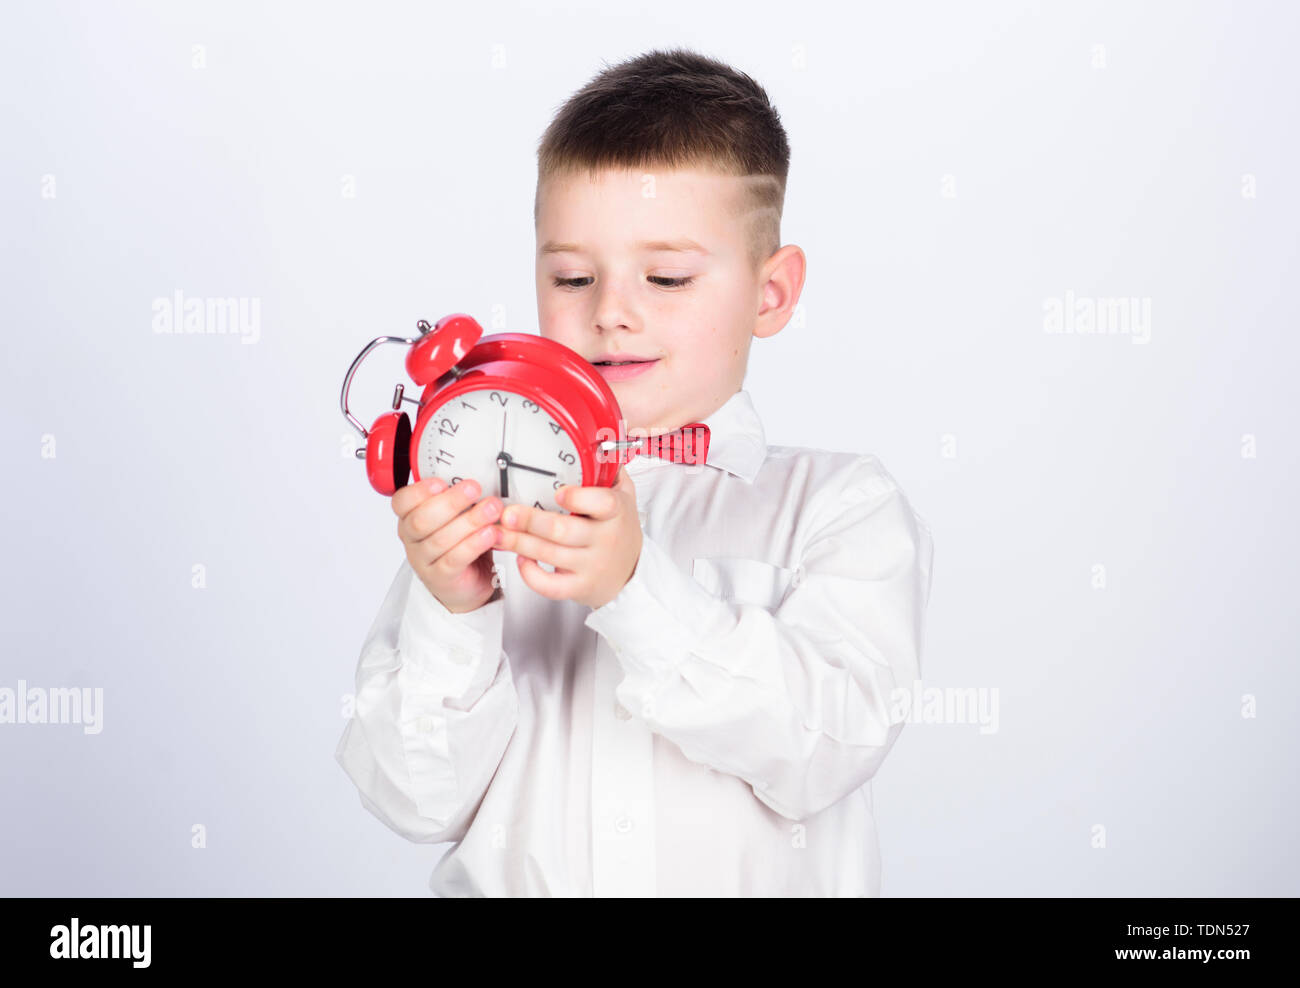 little boy with alarm clock. Time to relax. tuxedo kid. Happy childhood. Party time. Businessman. Formal wear. happy child with retro clock in bow tie. Time management. Morning. Morning vibes - Stock Image